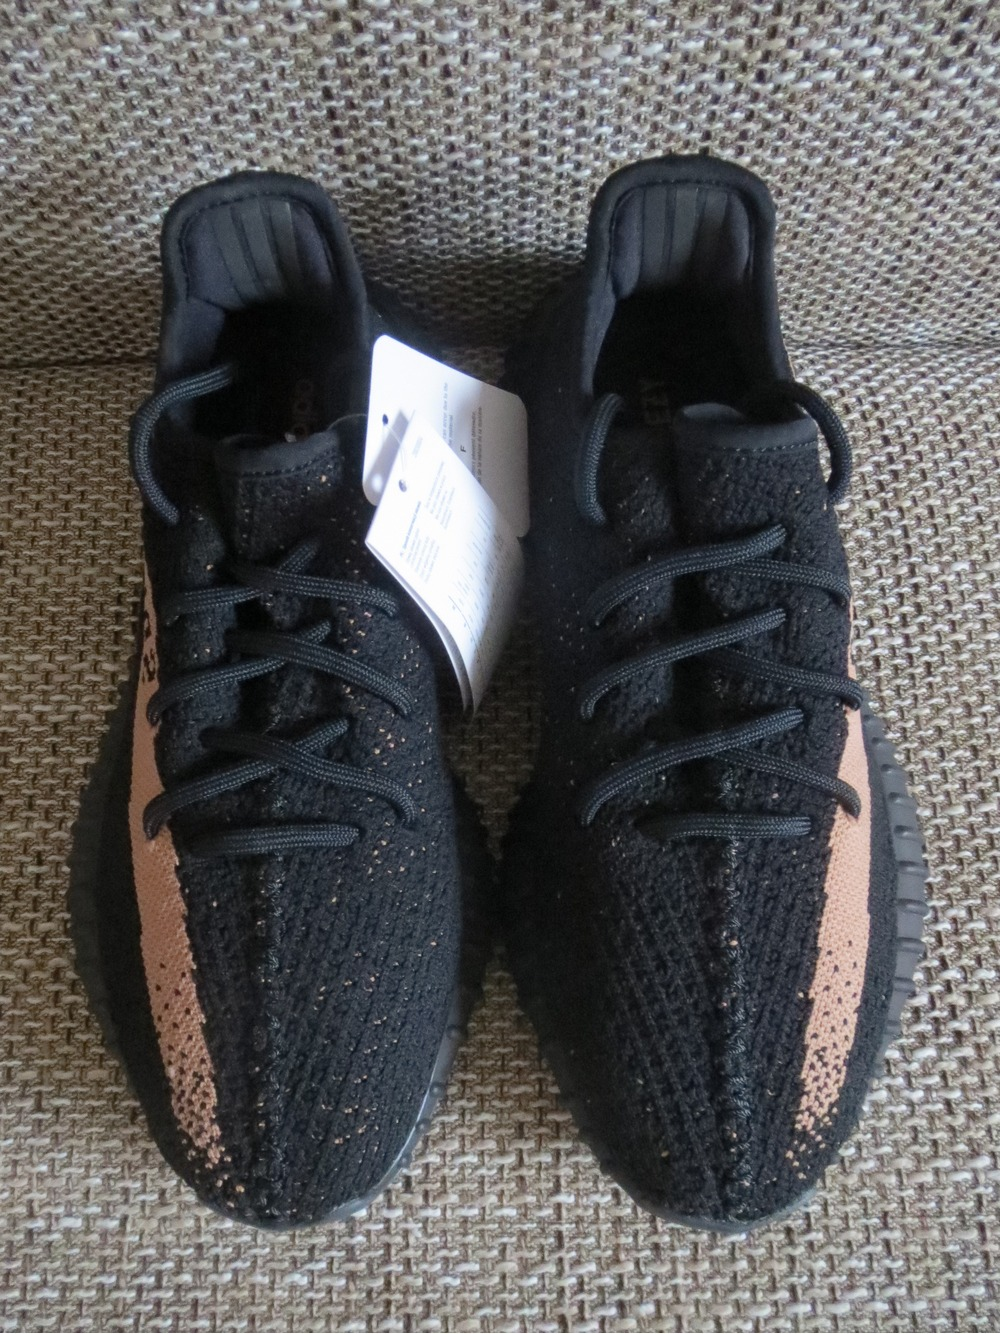 Real vs fake adidas Yeezy Boost 350 V 2 Black White